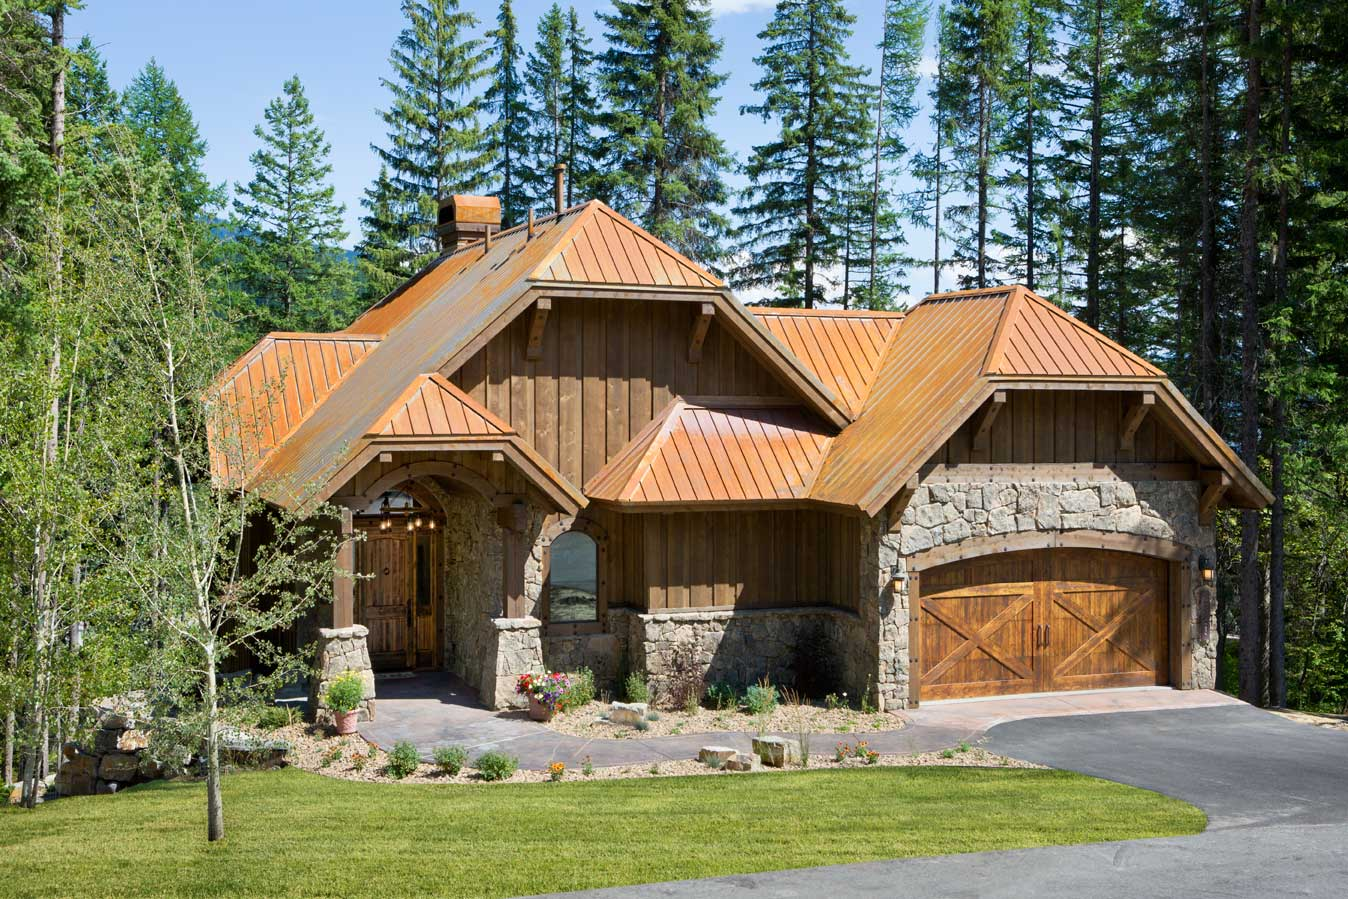 Whitefish builders montana custom rustic elegance for Custom rustic homes